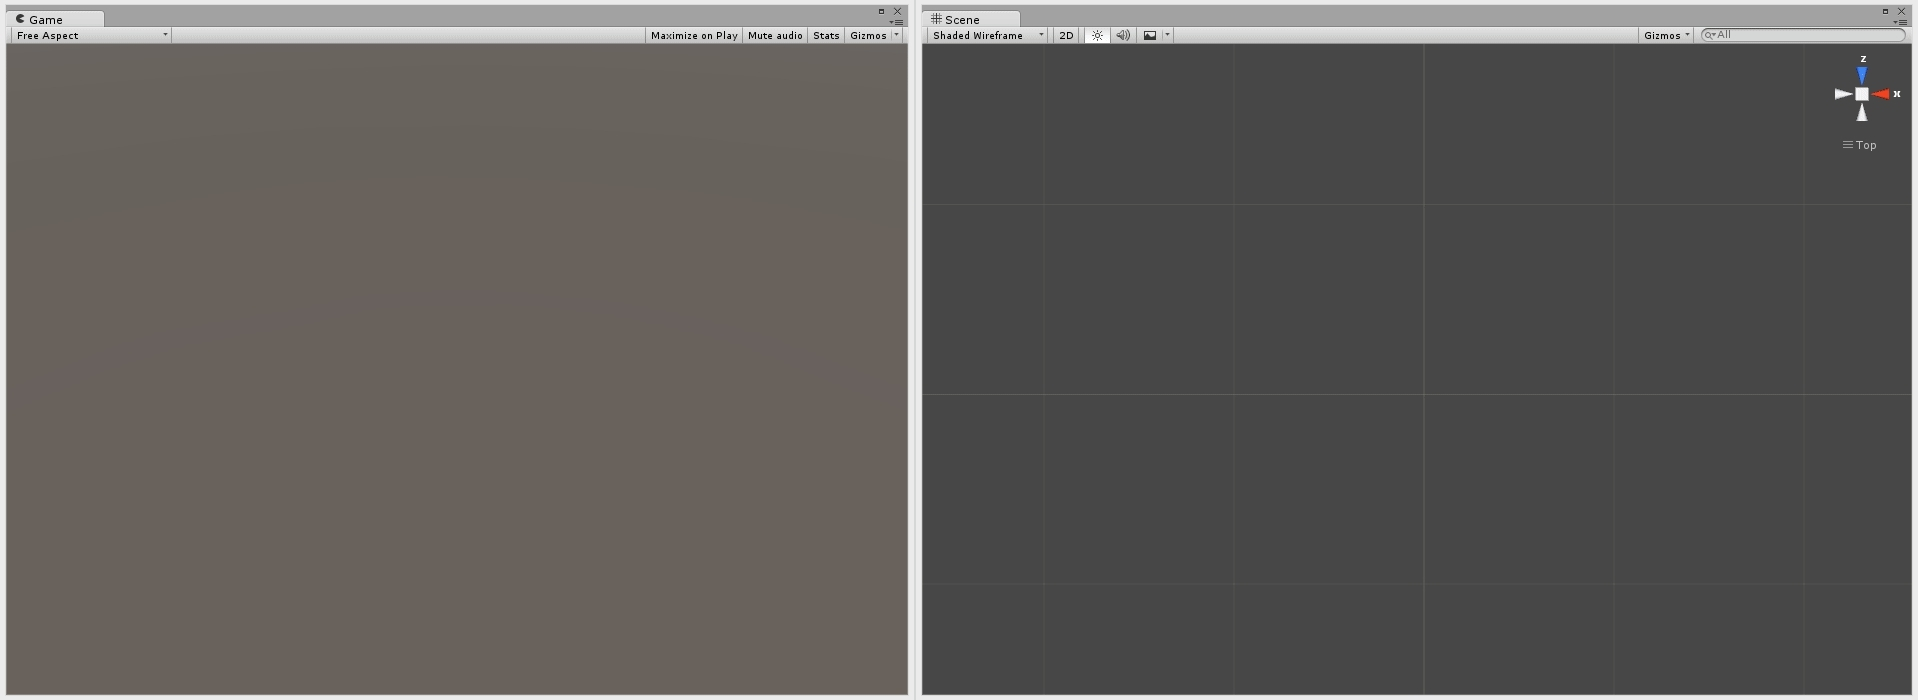 Procedural Level Generation in Unity3D part 2